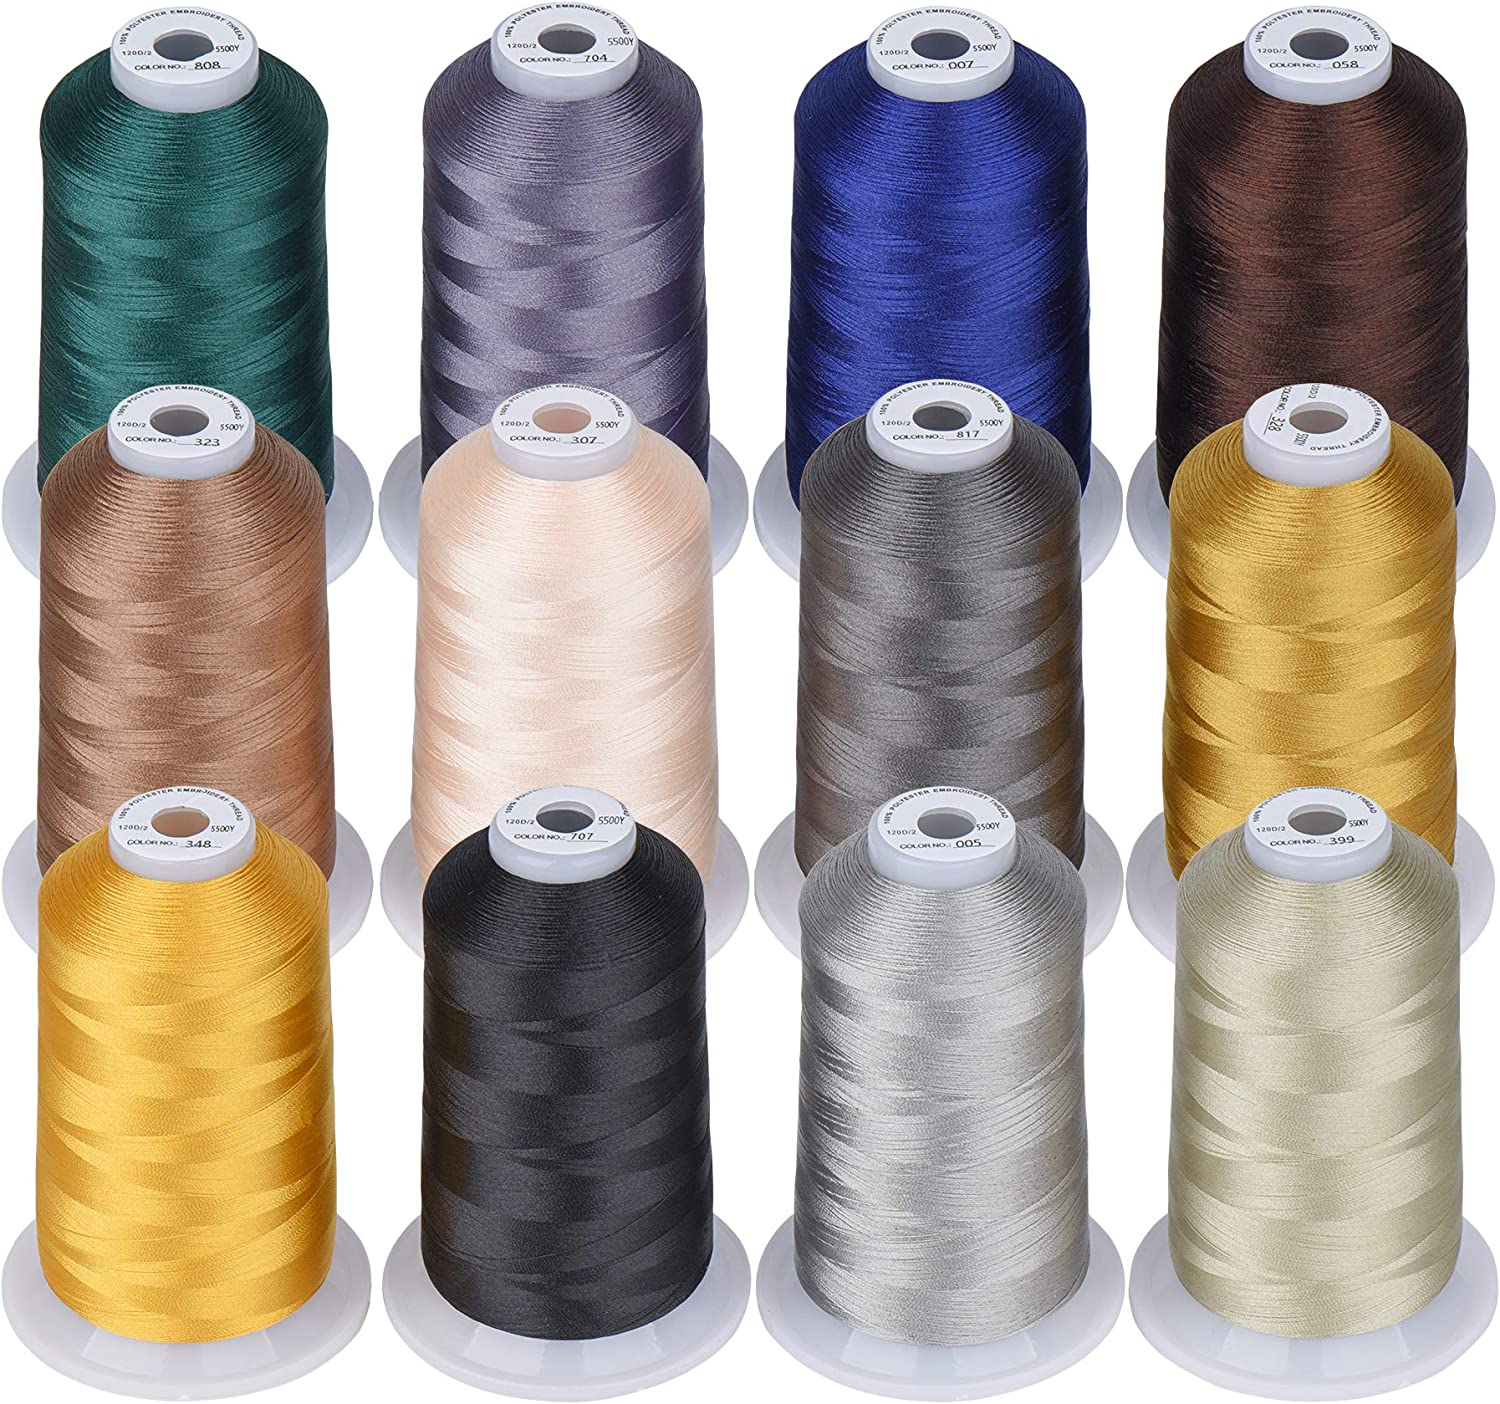 Simthread 12 Max 40% OFF Brother Colors of Embroi 5000M Huge Limited time cheap sale Spool Polyester